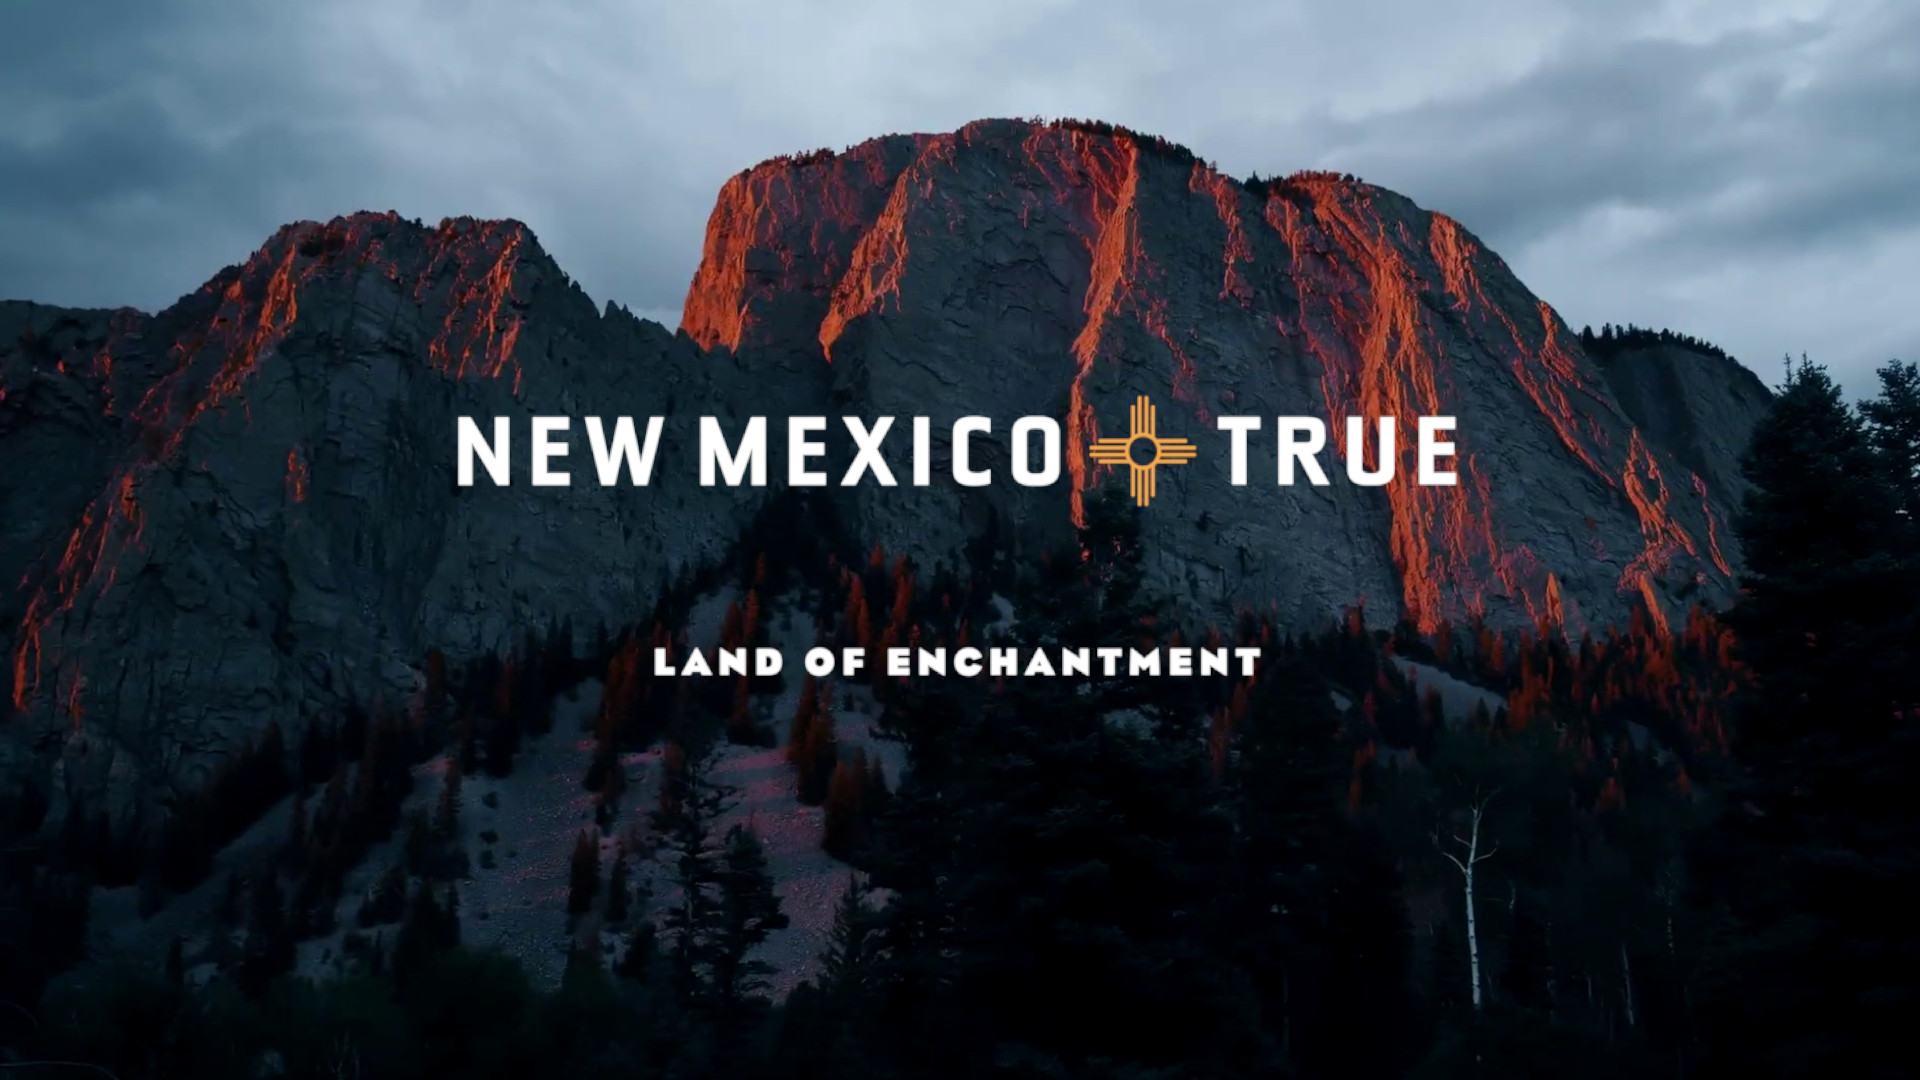 New Mexico True, Brand Refresh of Land of Enchantment